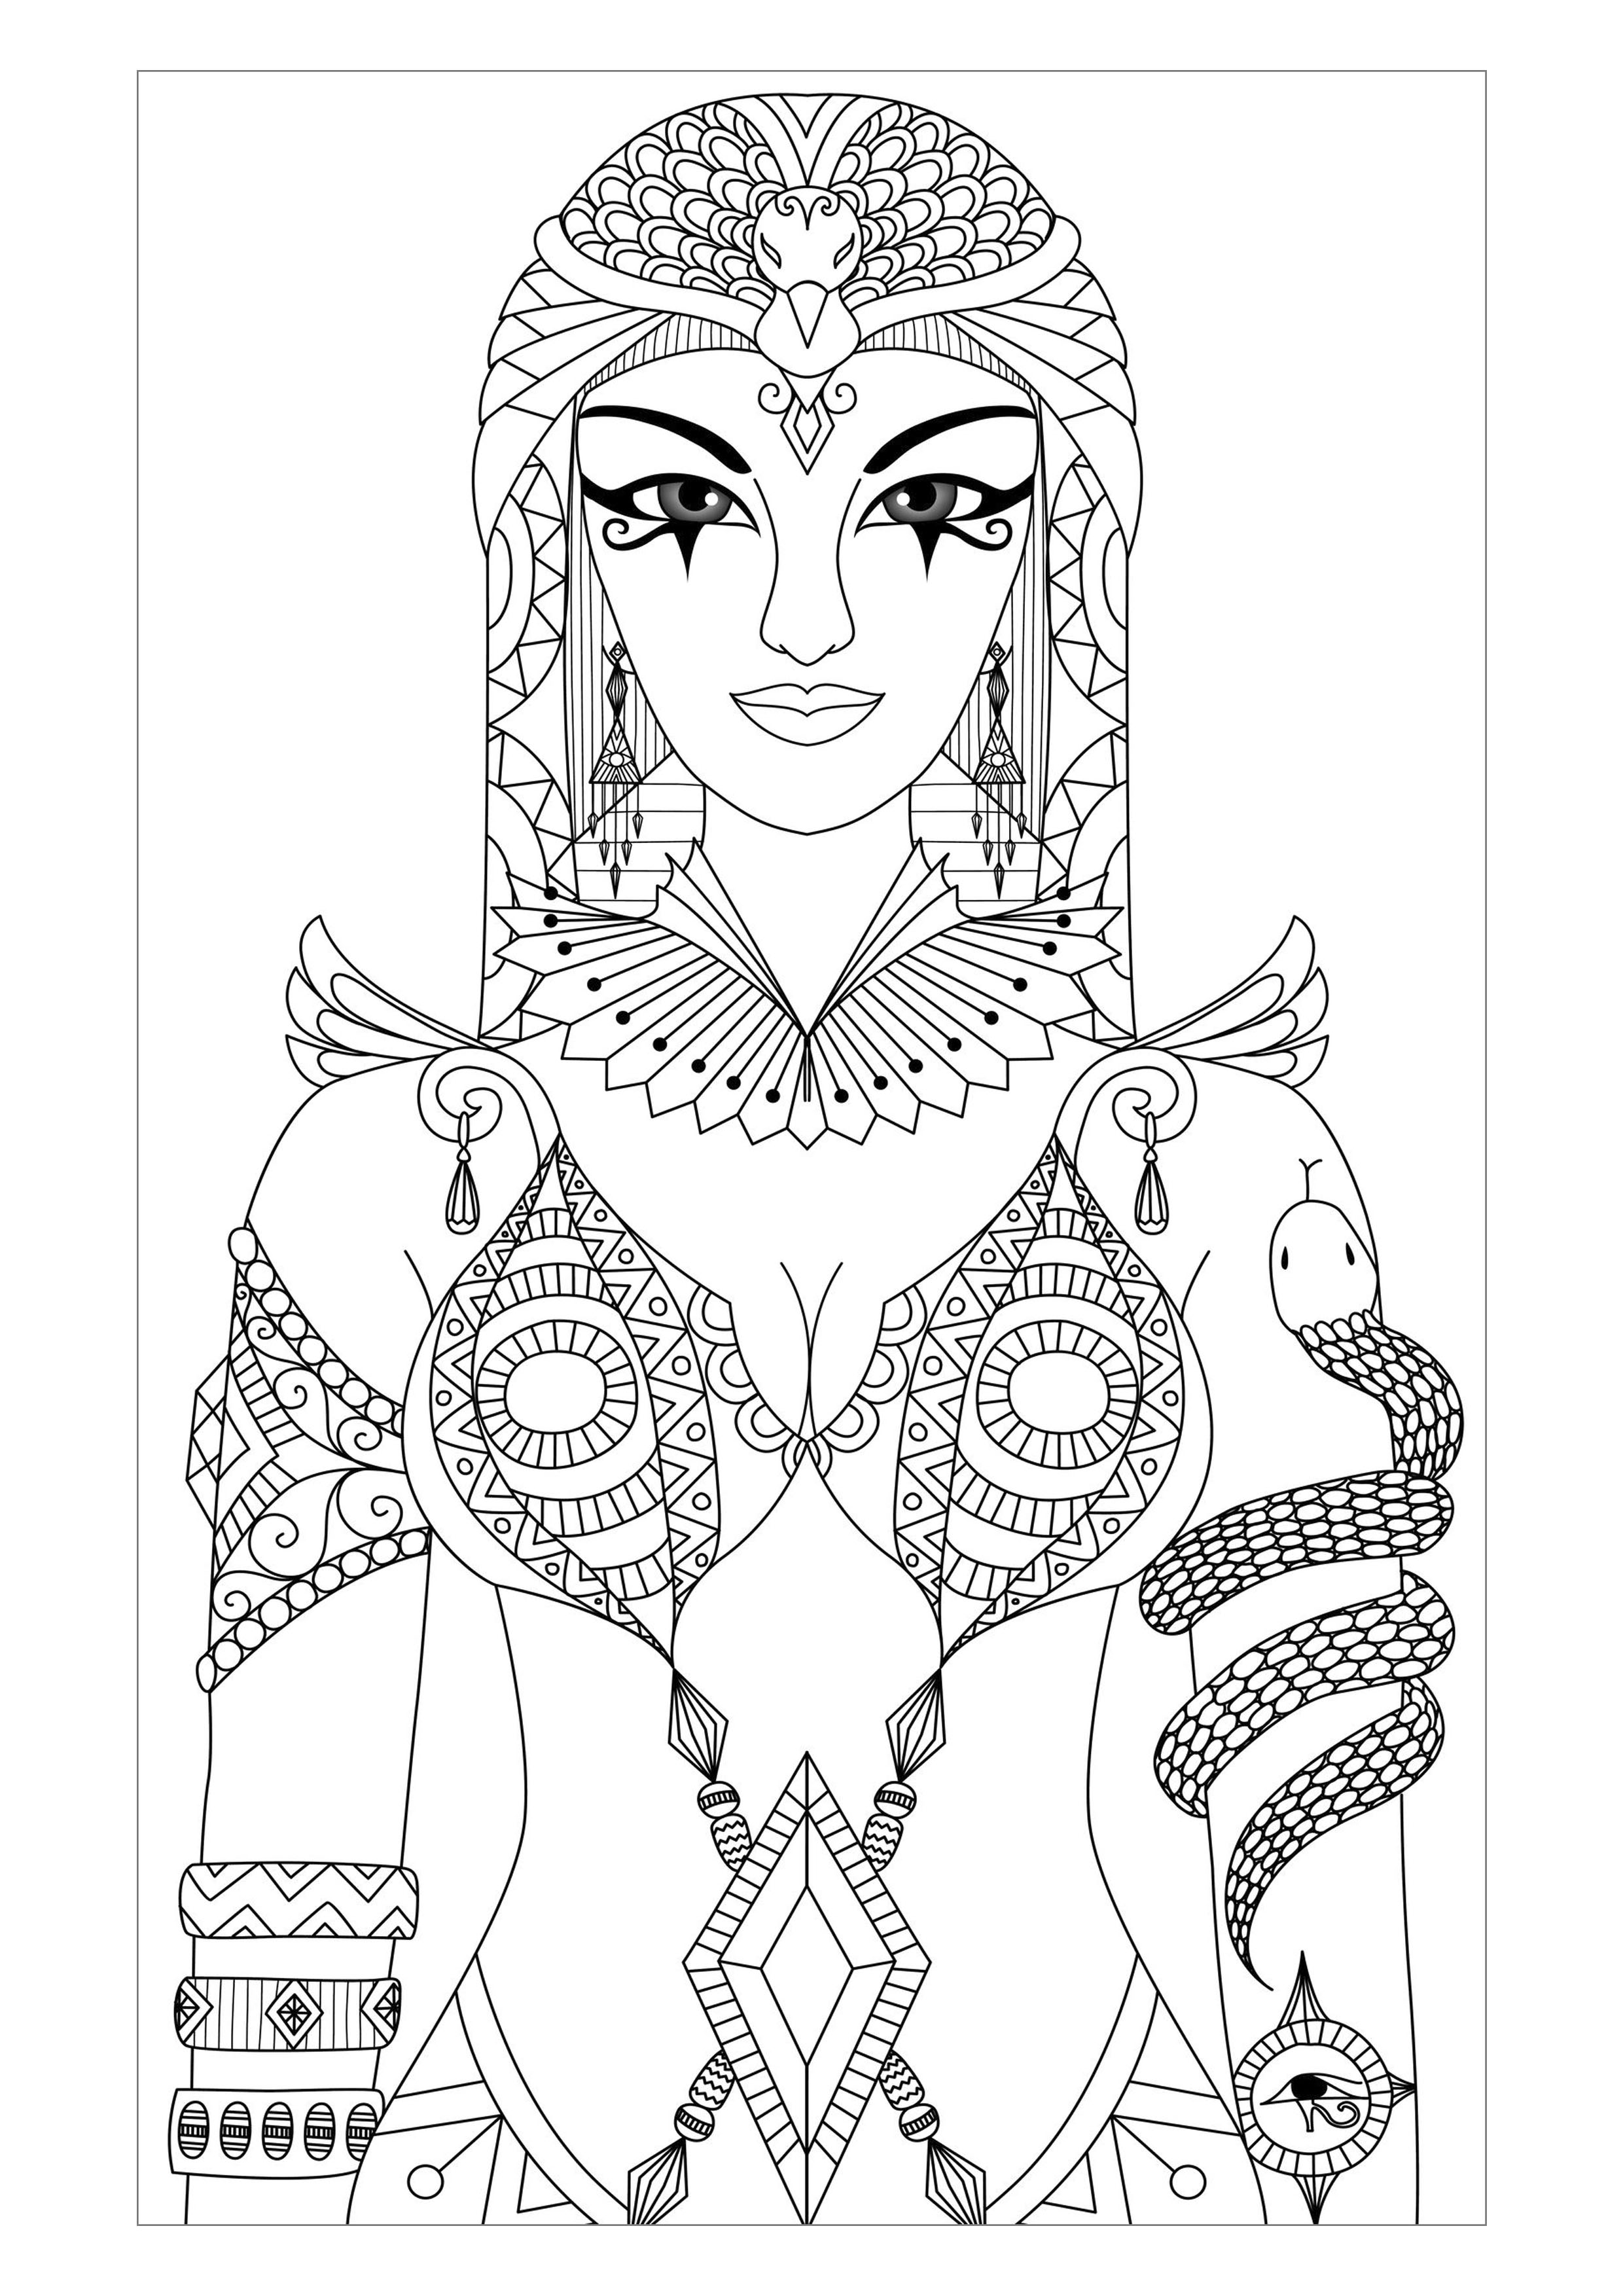 cleopatra coloring page the best free cleopatra coloring page images download cleopatra coloring page